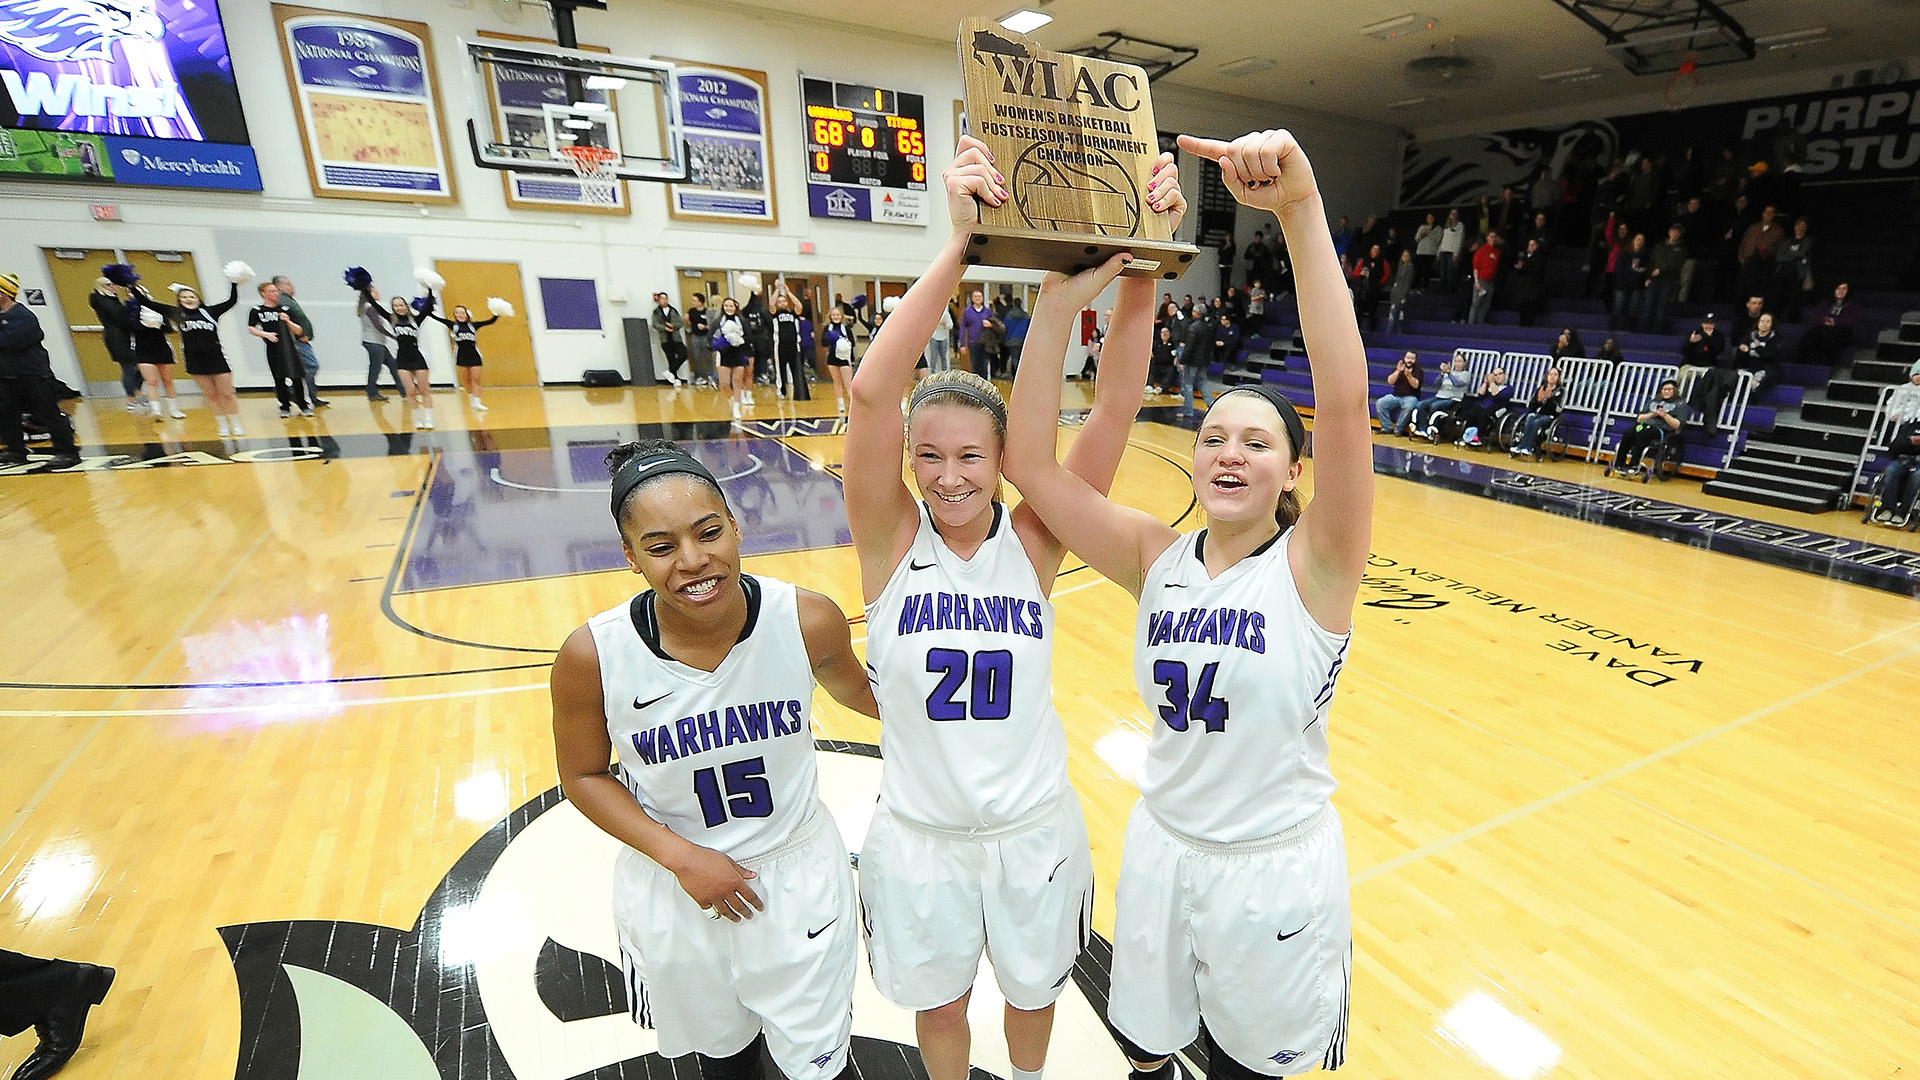 Wisconsin-Whitewater UW-Whitewater women's Basketball ...